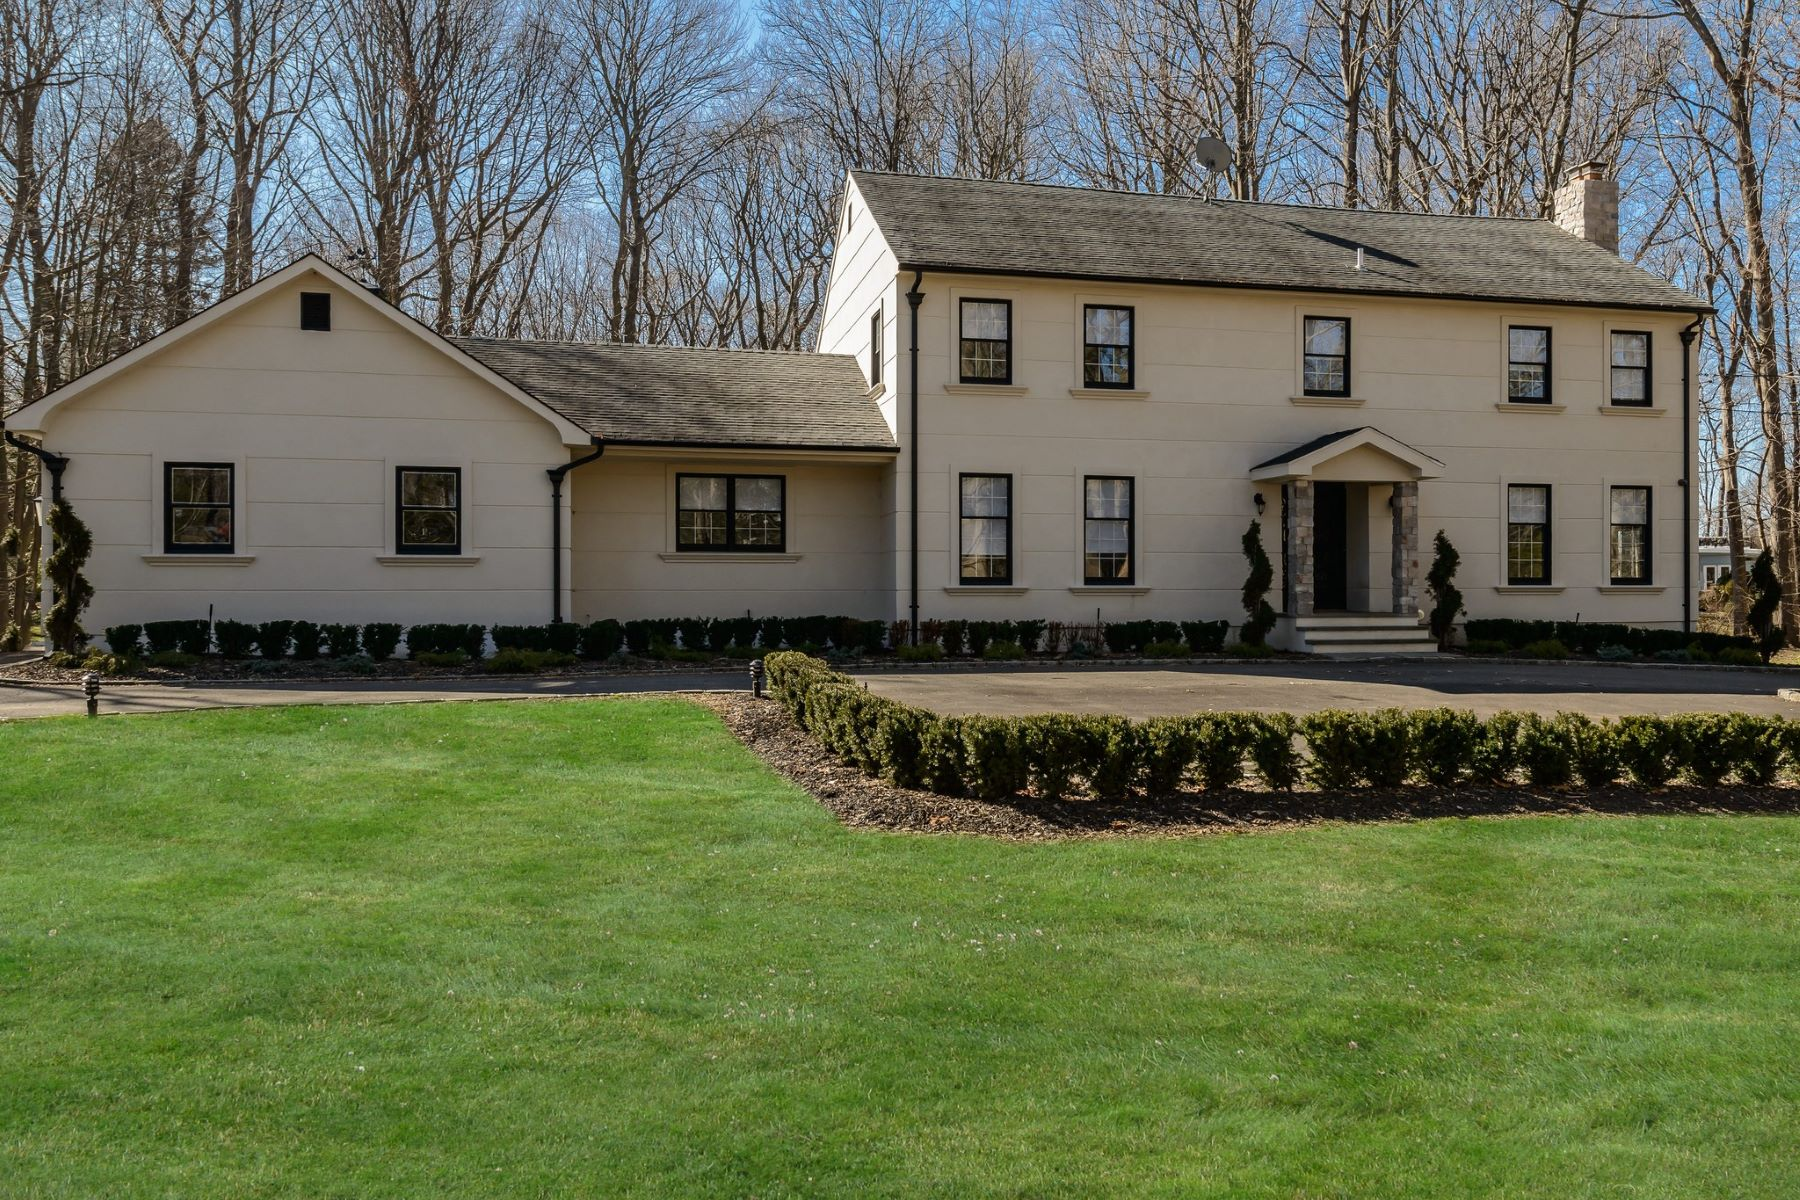 Single Family Homes for Active at Old Brookville 17 Woodland Ln Old Brookville, New York 11545 United States